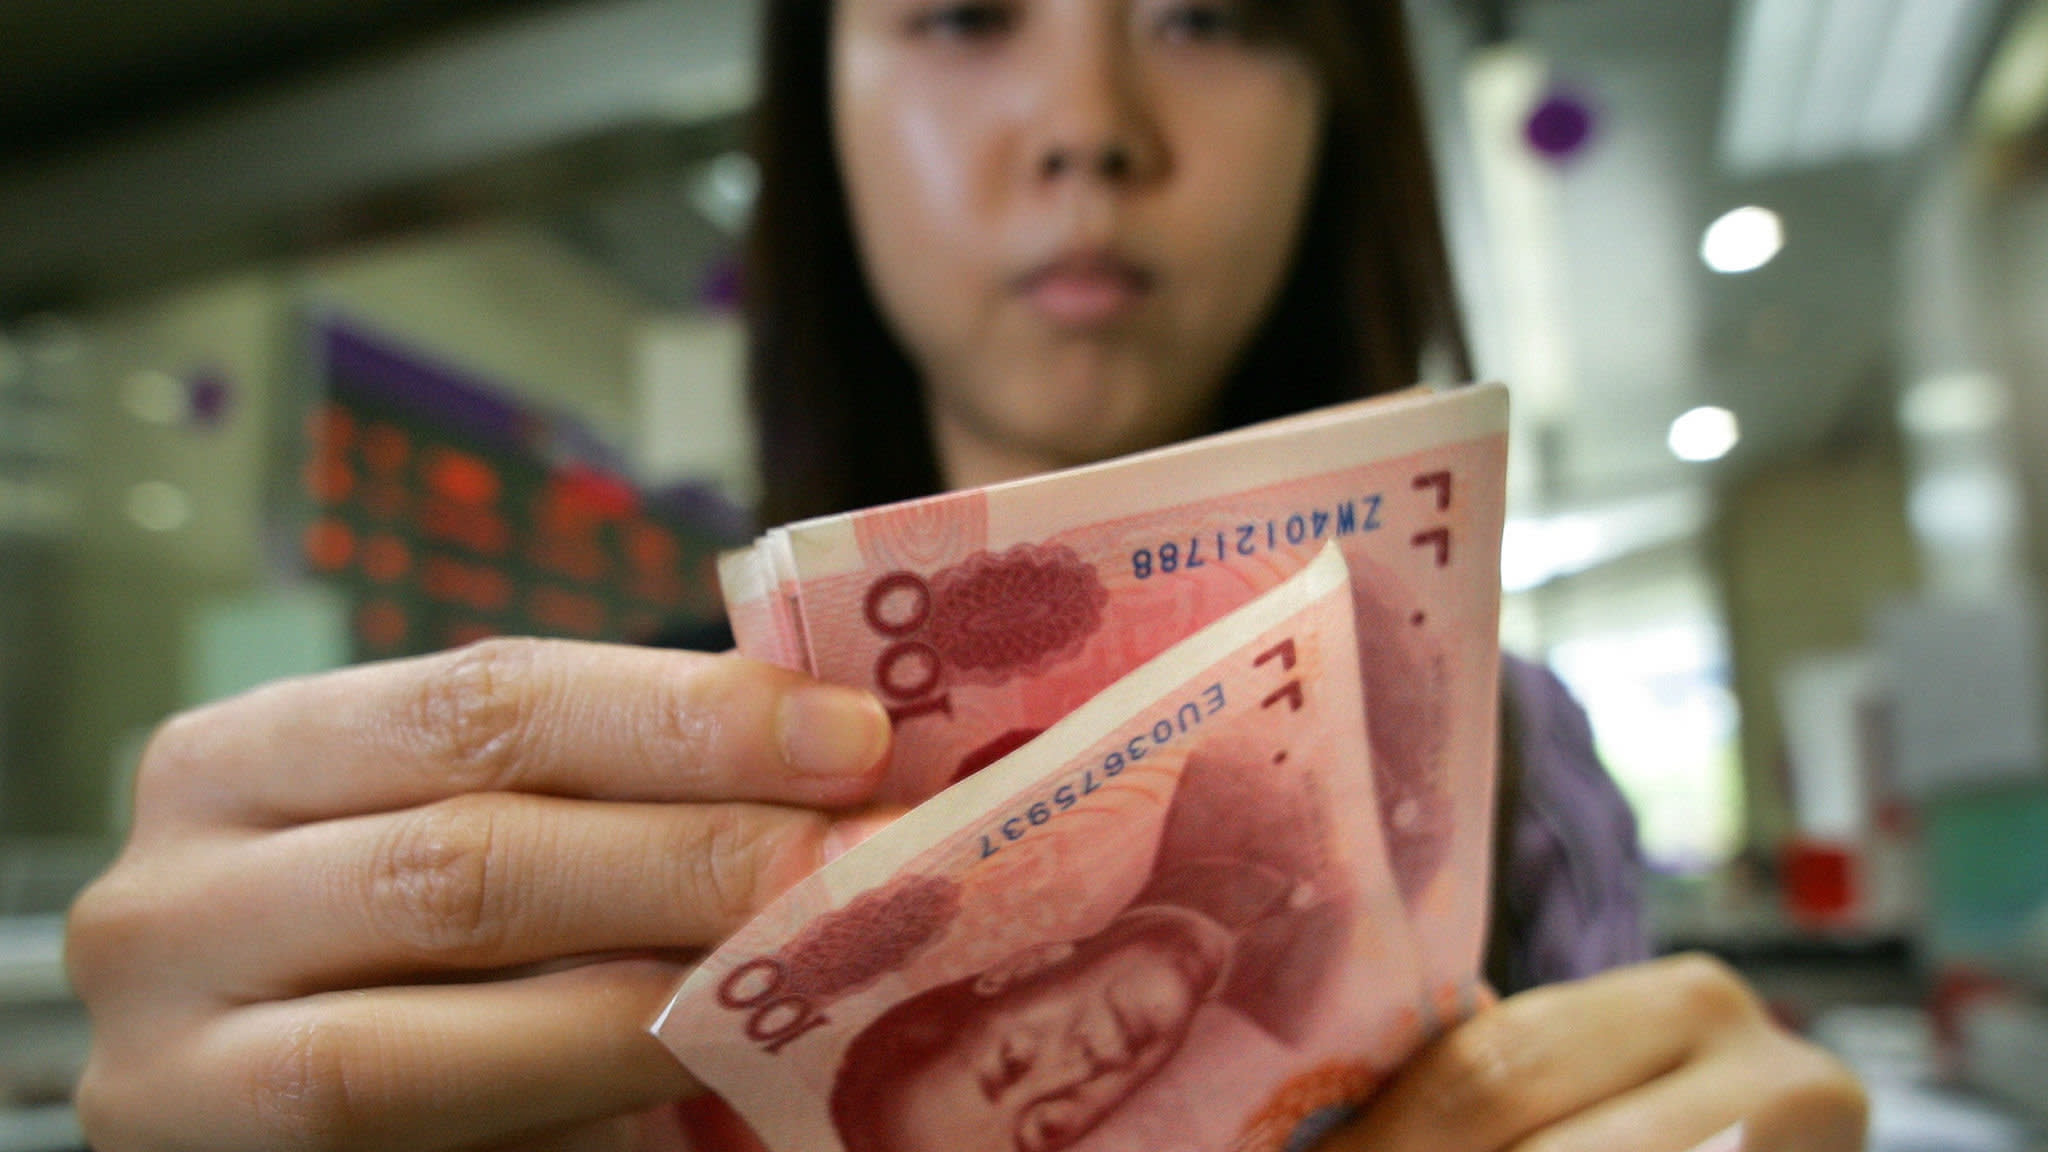 China's private sector struggles for funding as growth slows